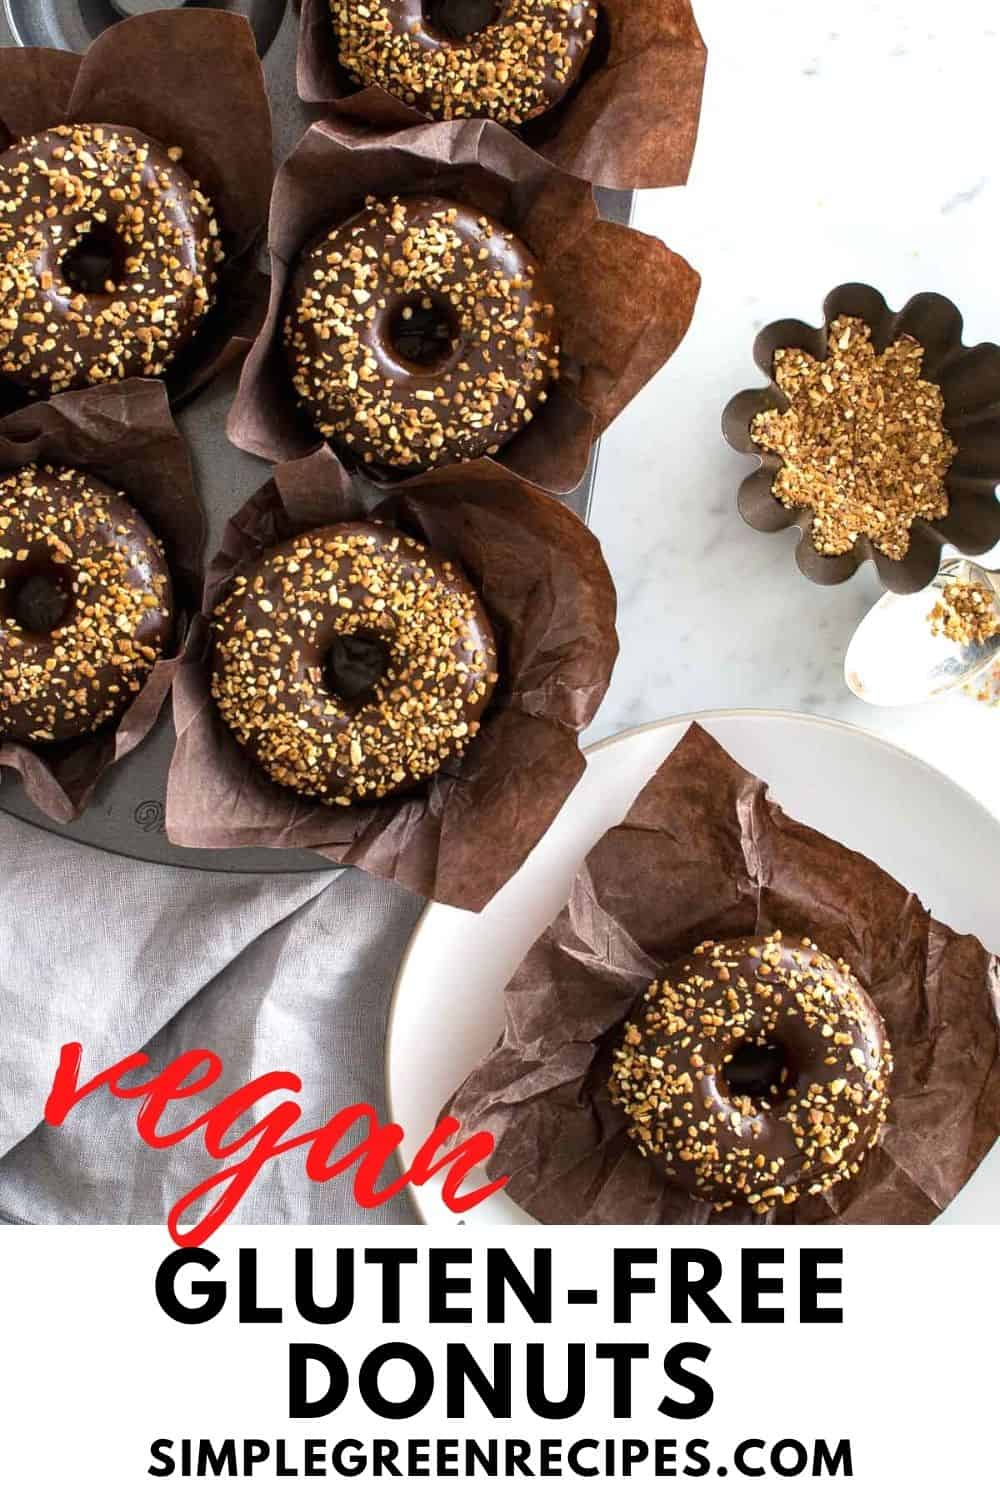 6 donuts frosted with glaze chocolate and crunchy almonds, on a brown muffin paper